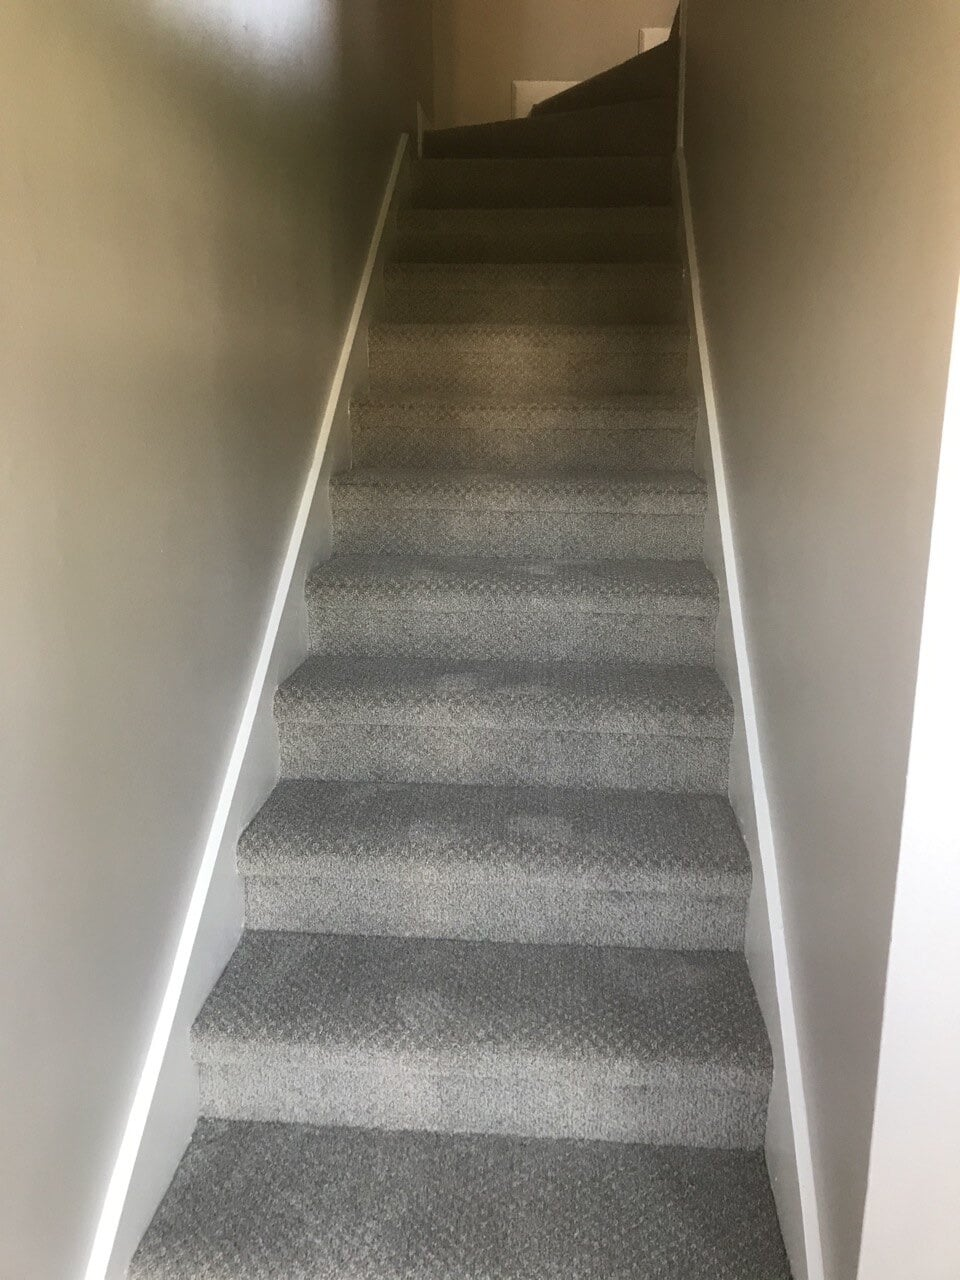 Textured stair carpet in Nashville, TN from Absolute Flooring Inc